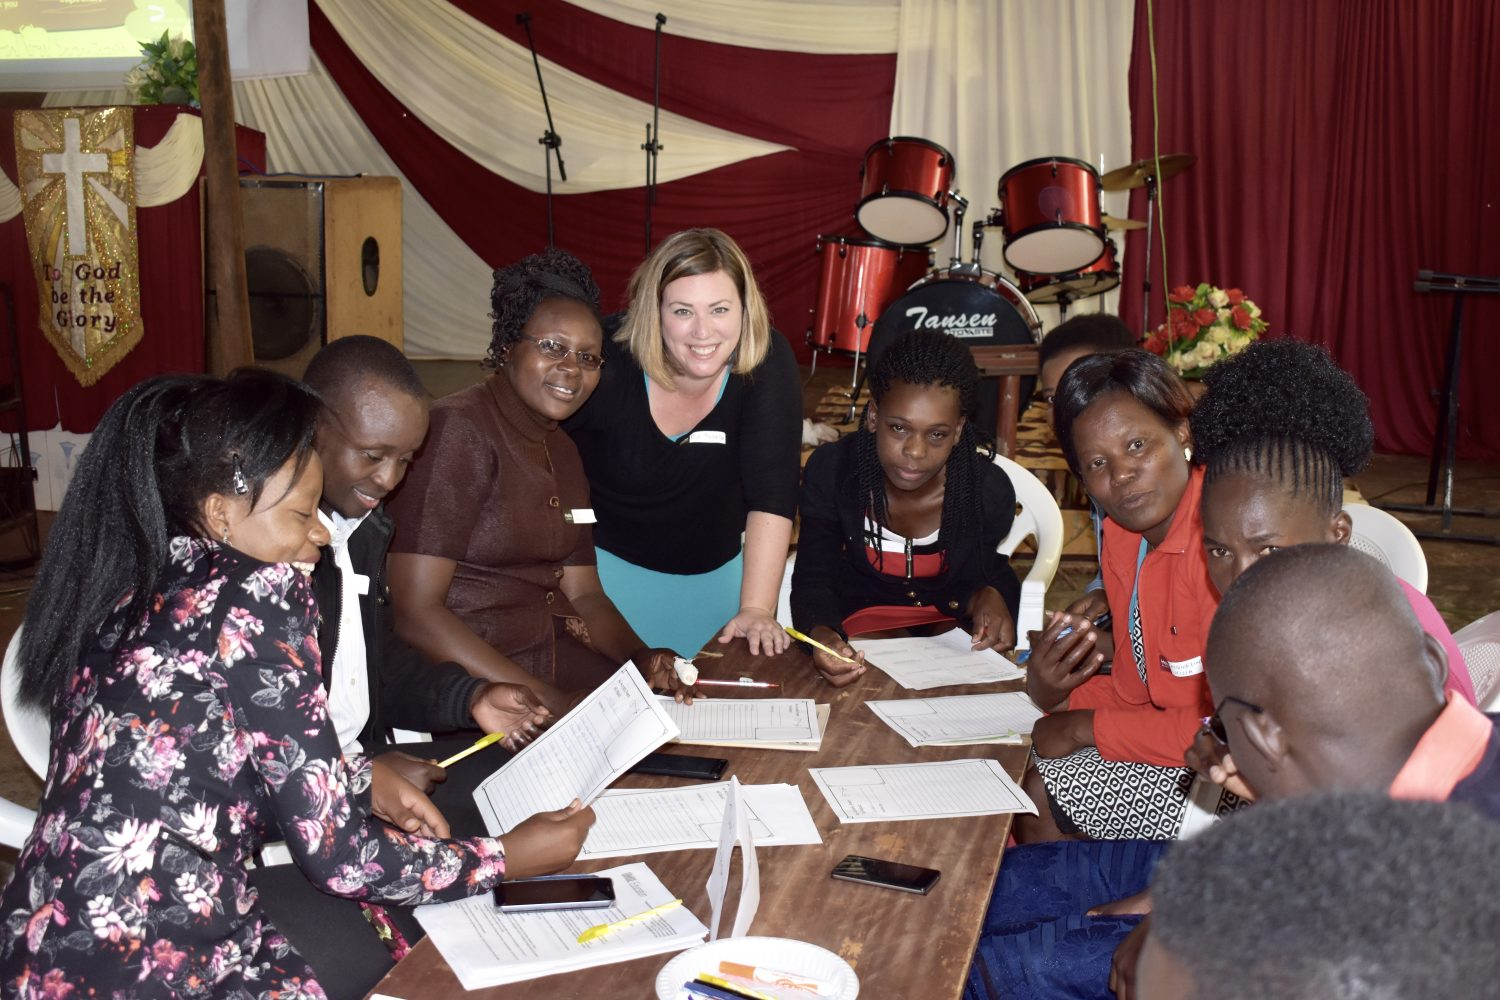 Michelle Falter, Ph.D., surrounded by teachers in Kenya